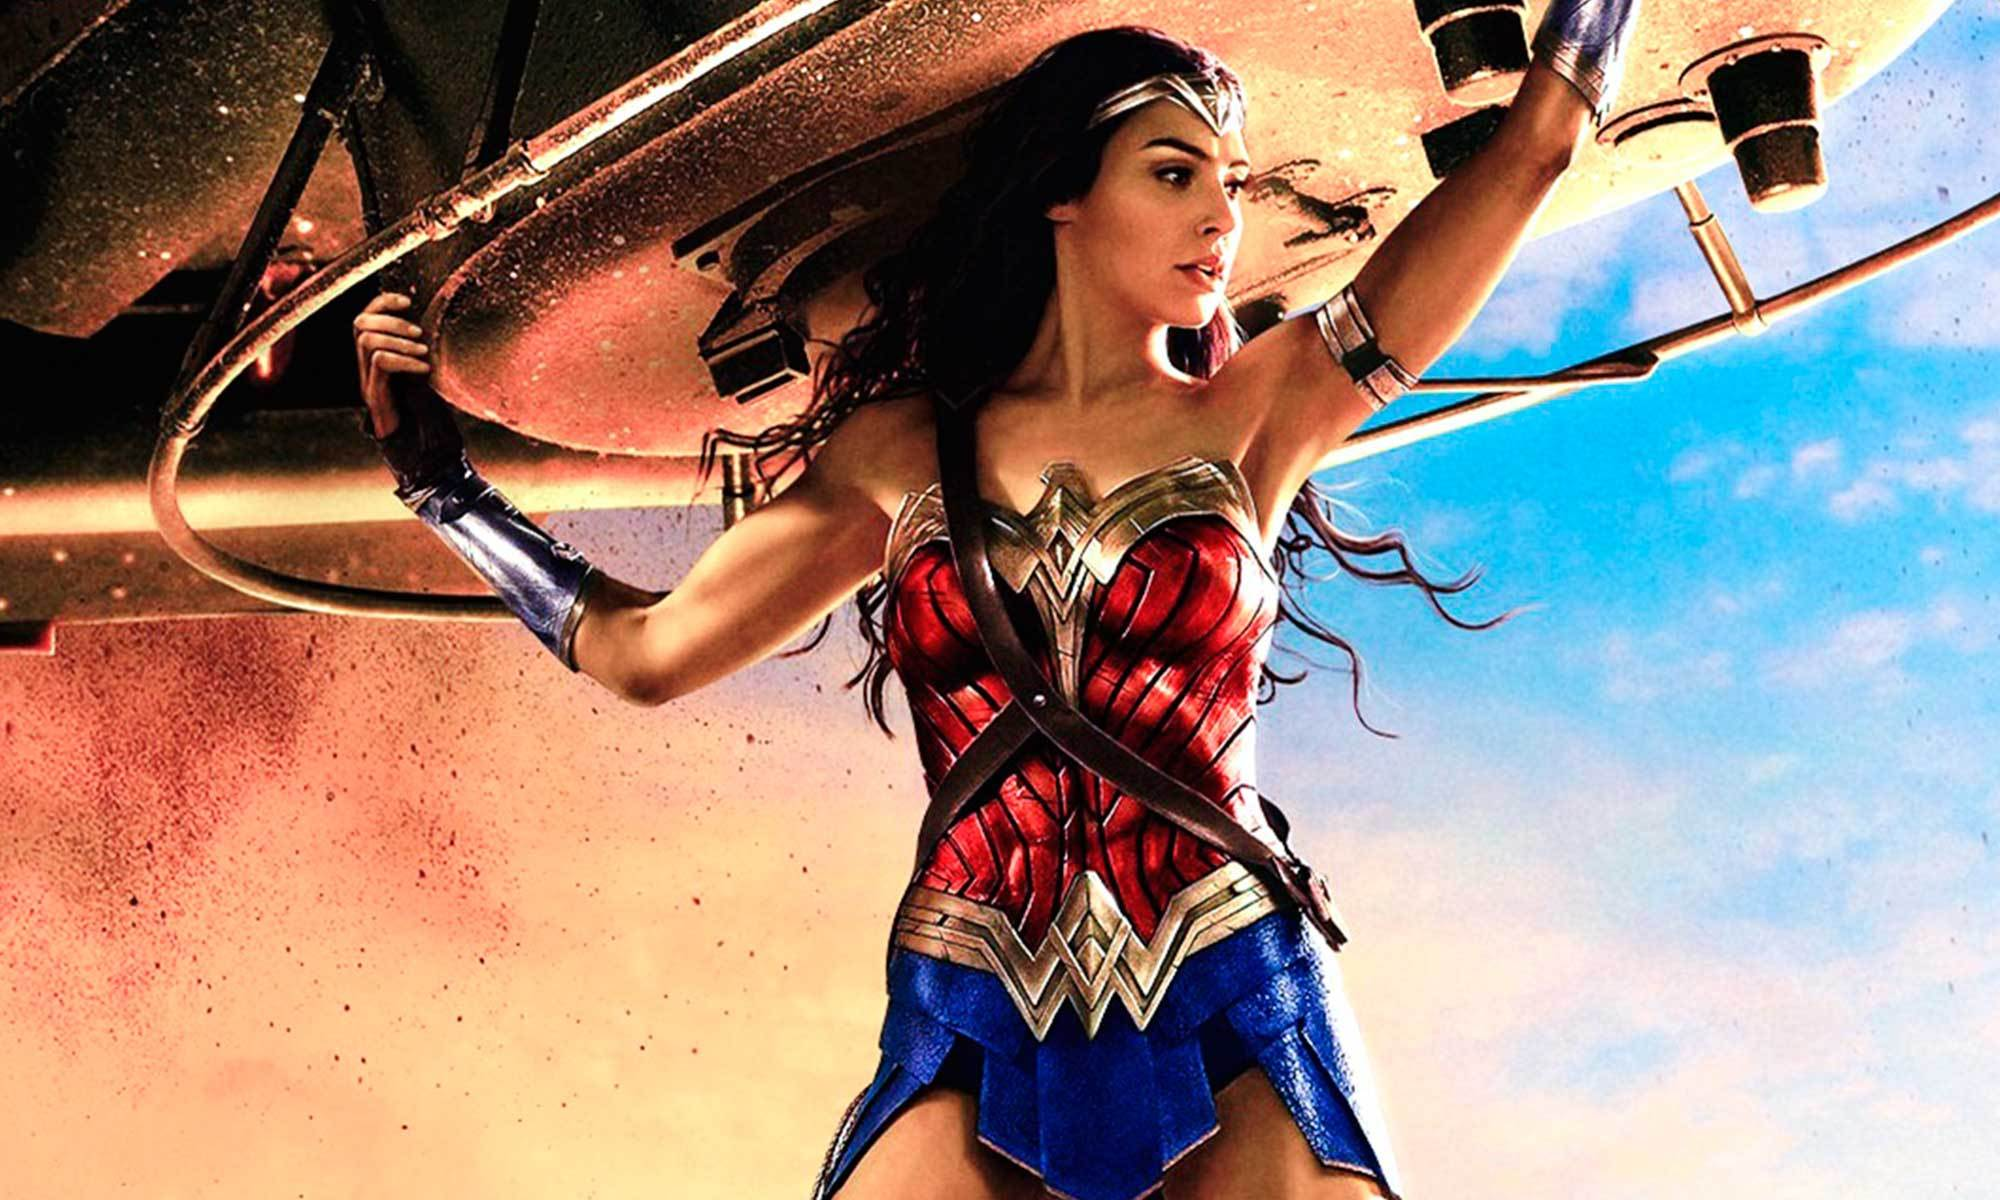 wonder woman warrior action dc comics gal gadot hd wallpaper